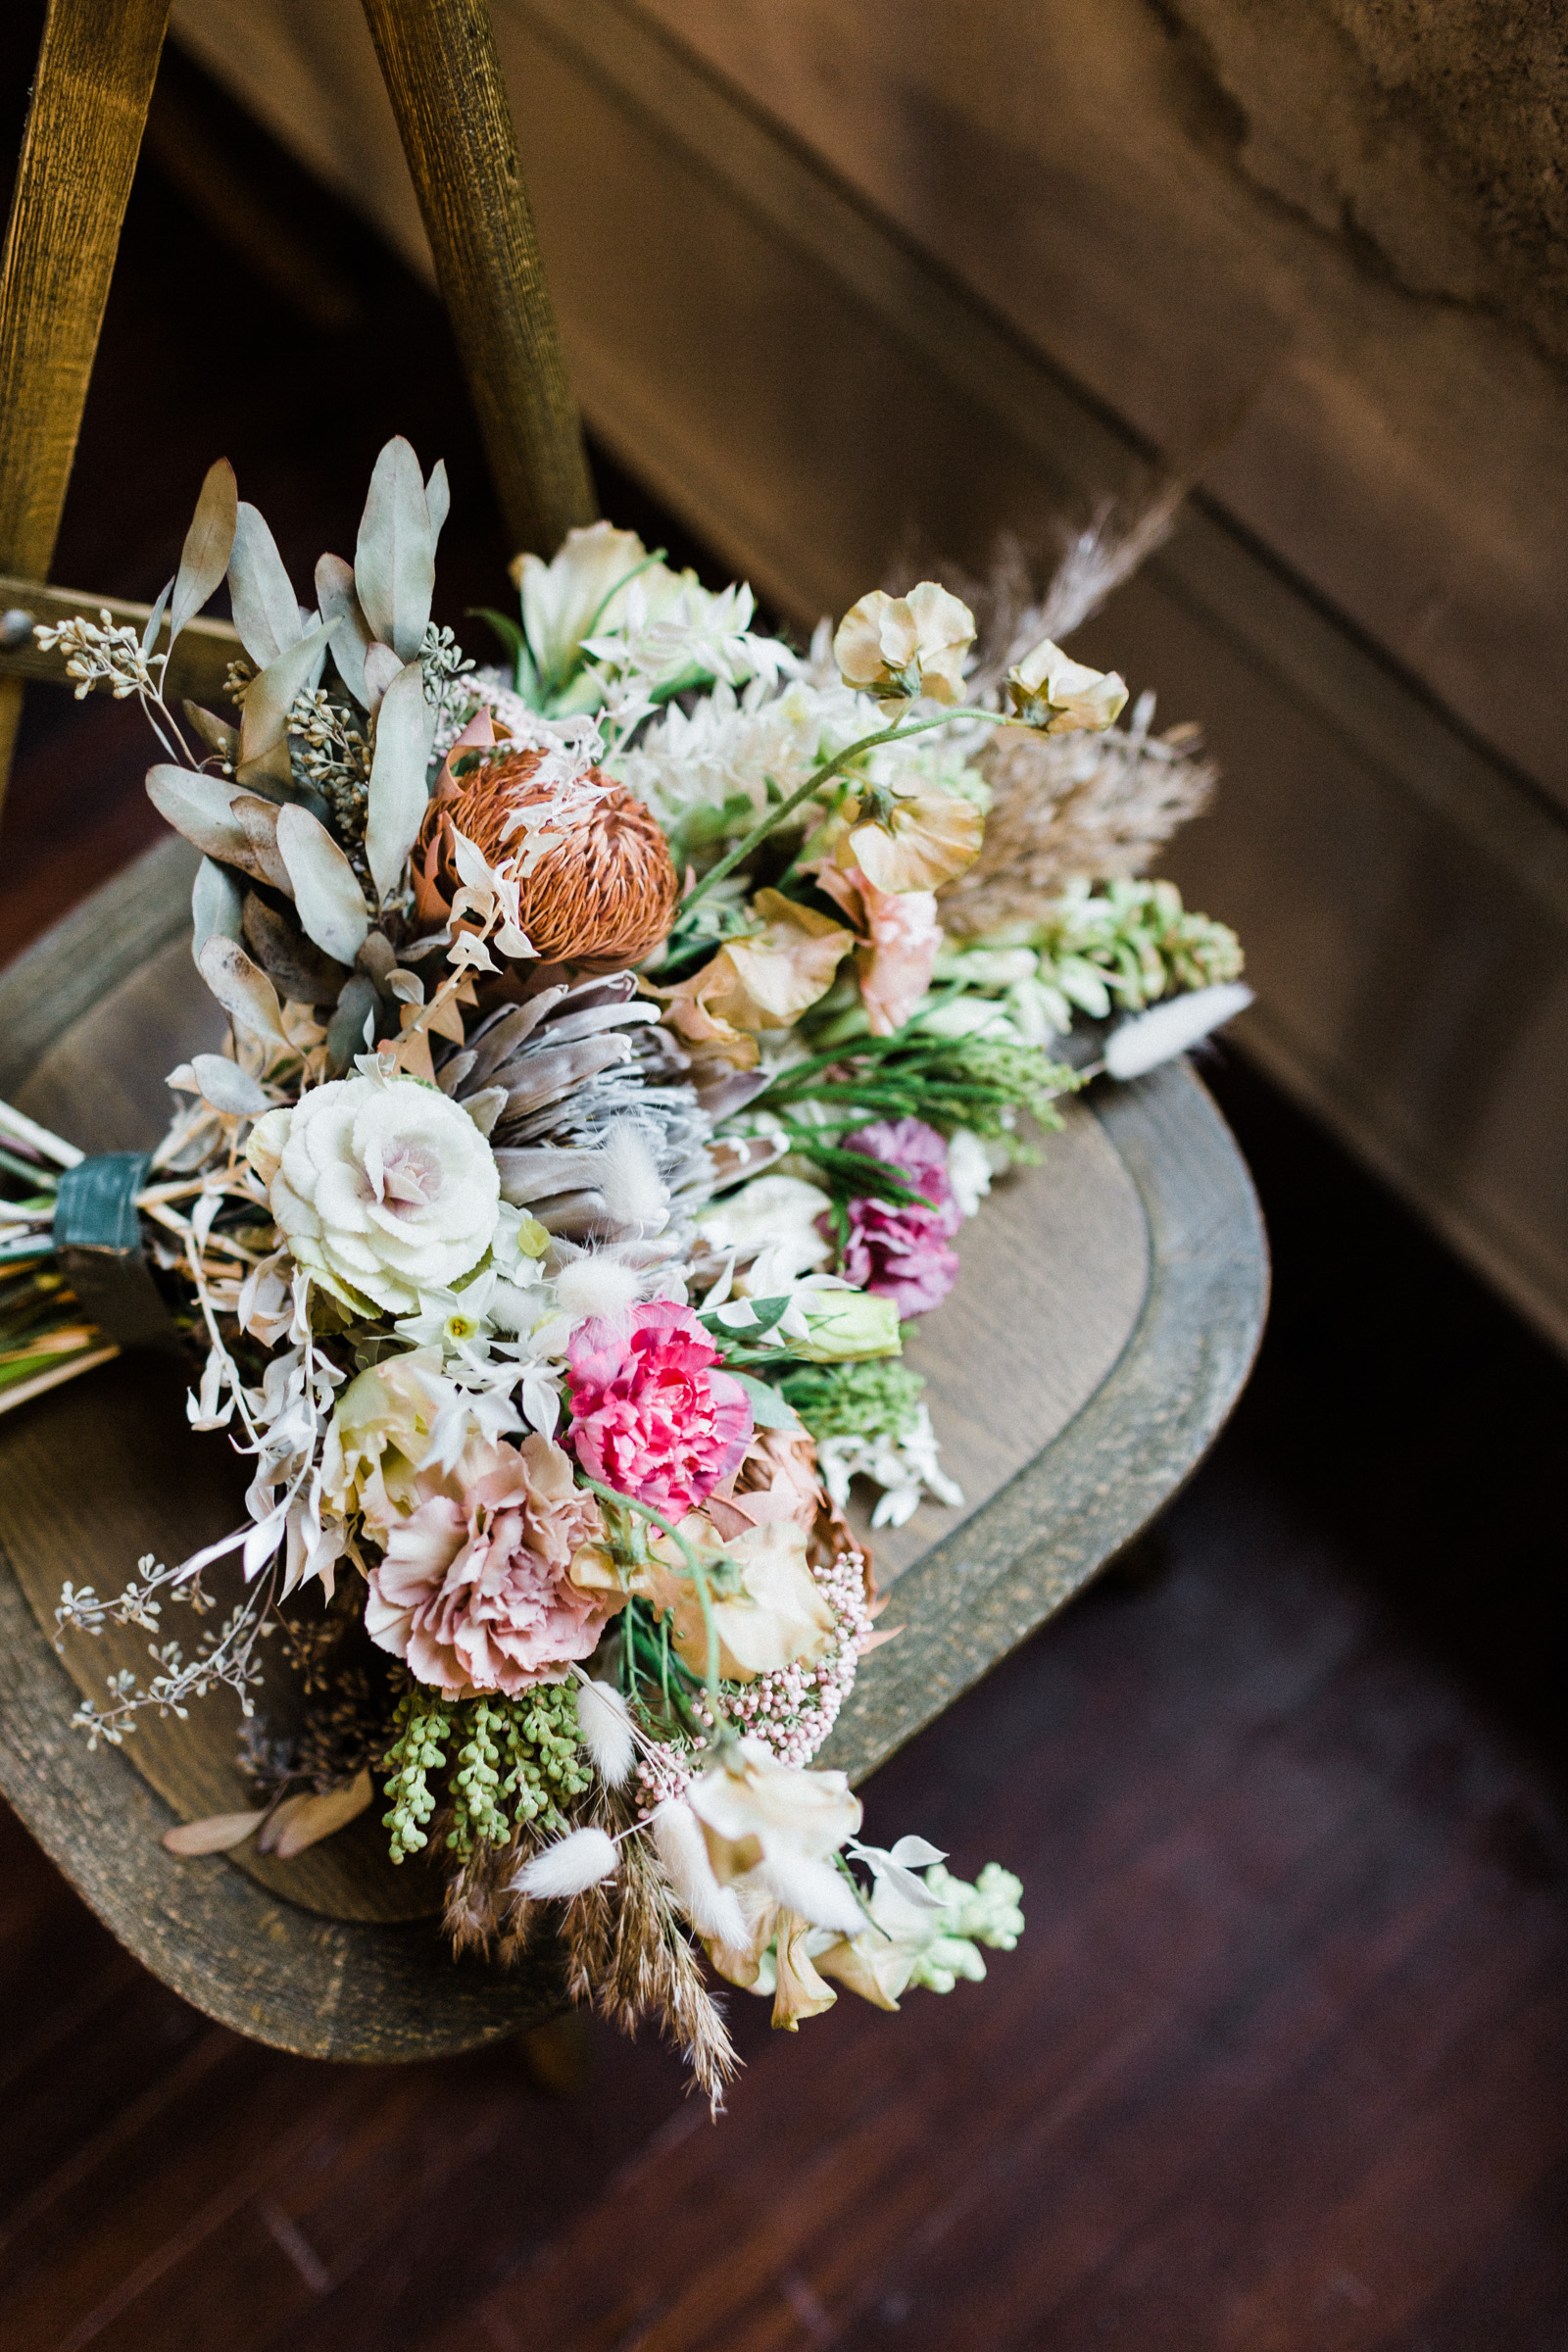 Wedding bouquet at the century hall